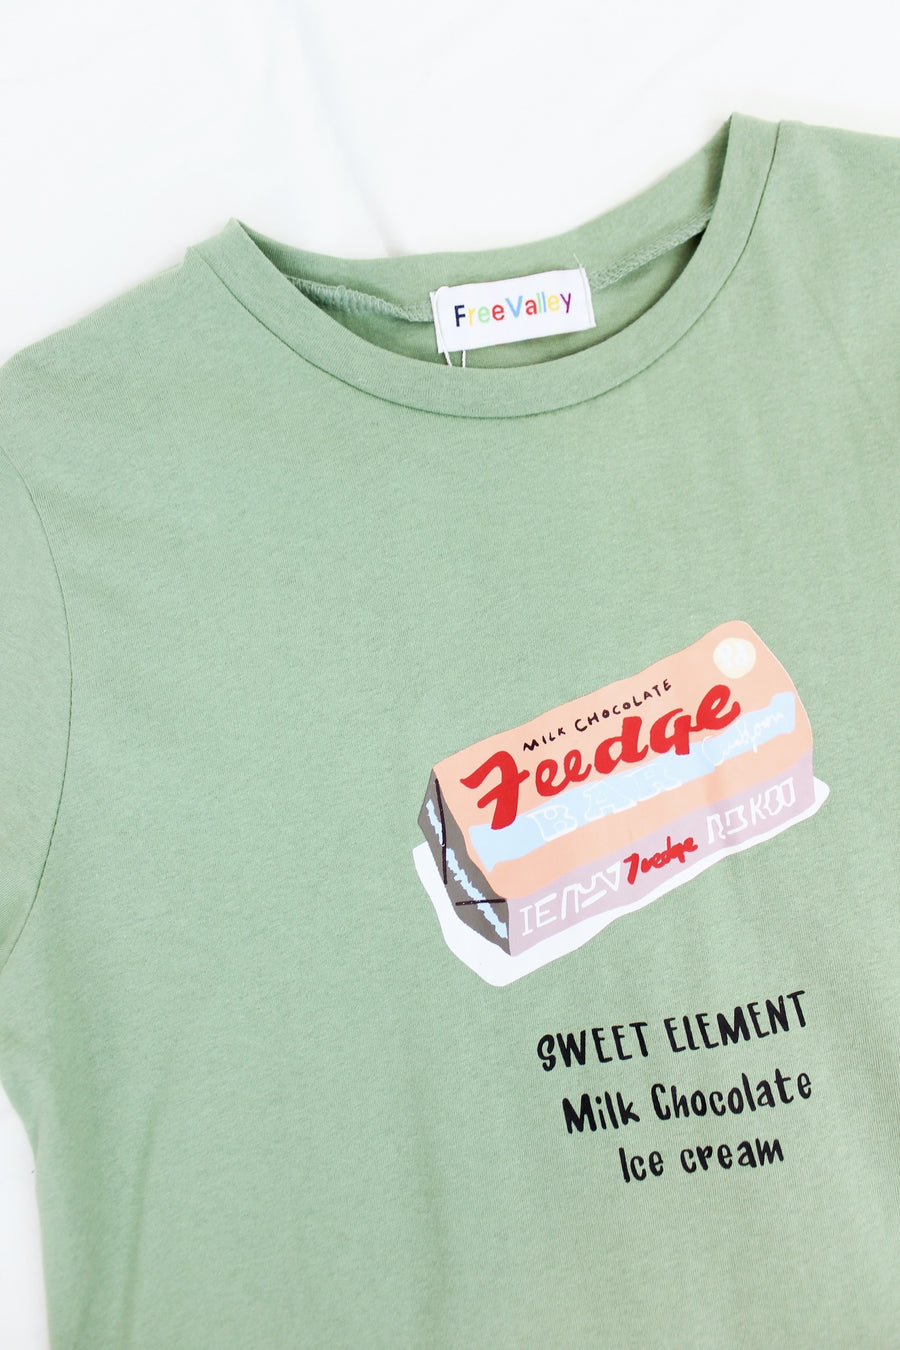 SWEET TOOTH GREEN TEE - Halite Clothing